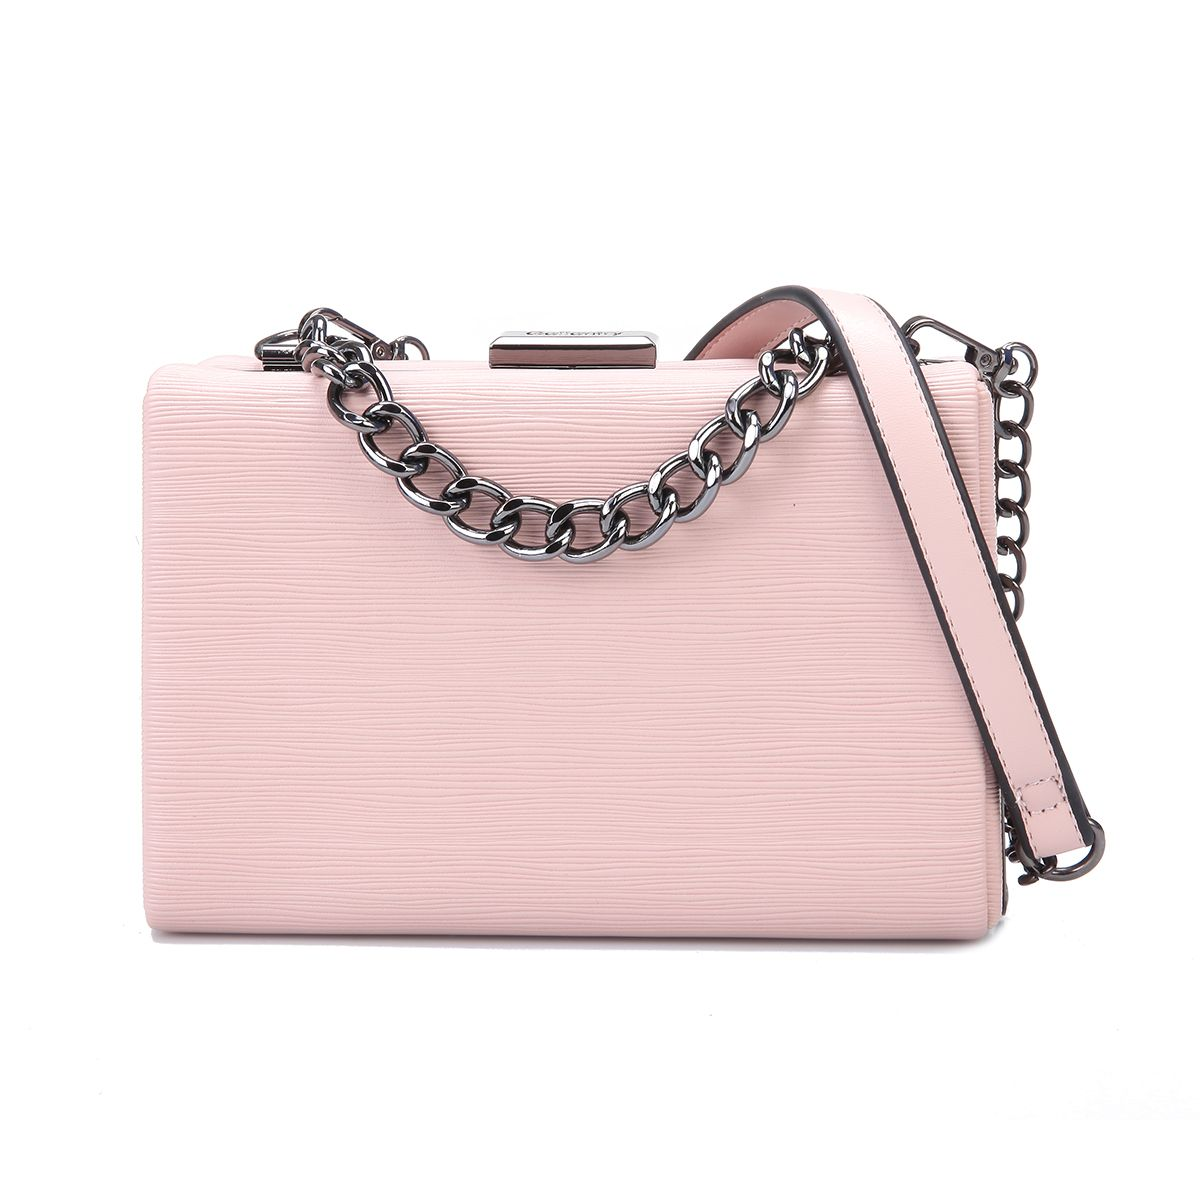 Pochette rectangulaire en simili cuir rose à relief